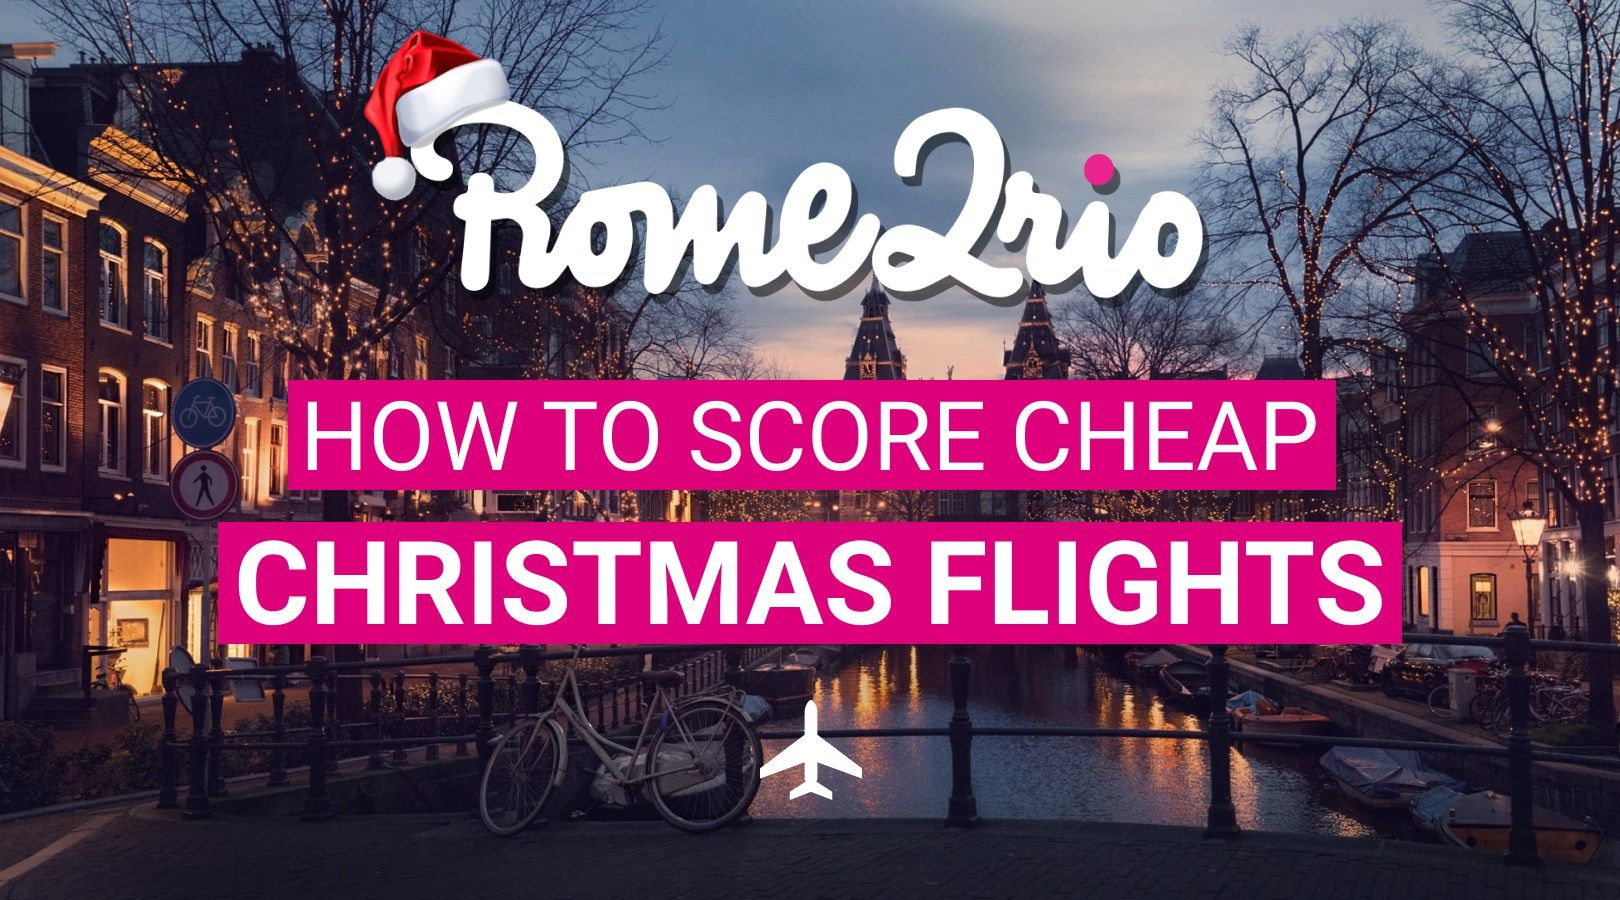 Cheap Christmas flights: how to find them and where to go ...